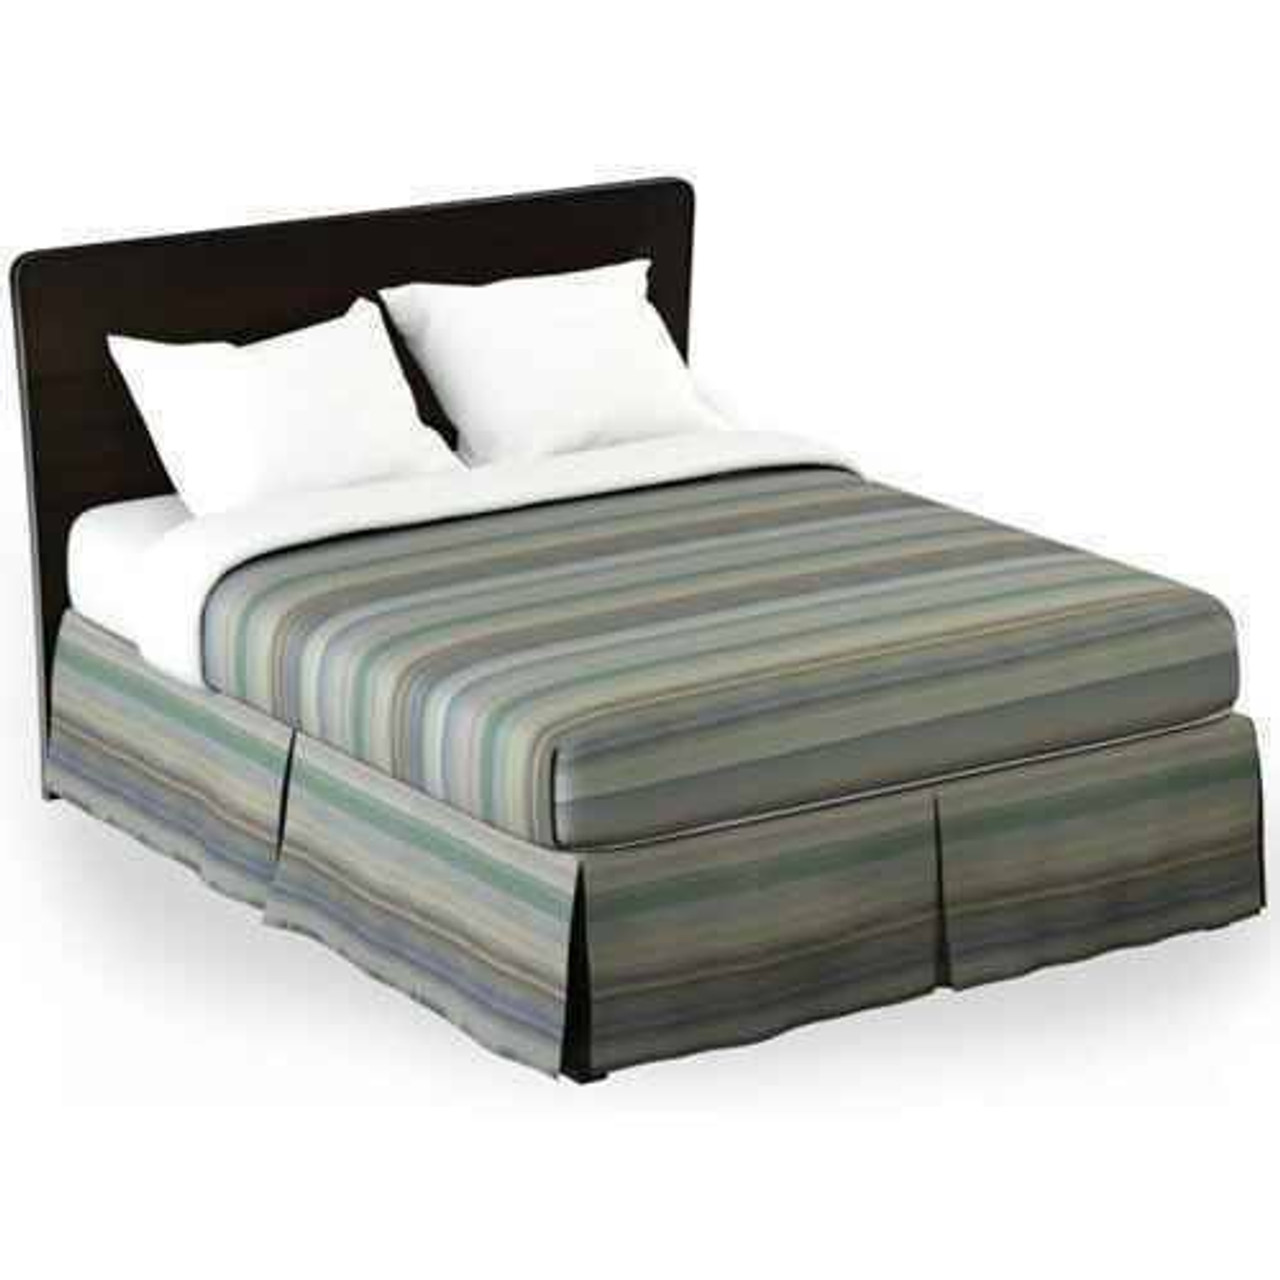 WestPoint/Martex Westpoint or Martex Rx or Bed Skirt or Finley or Blueor Pack Of 12